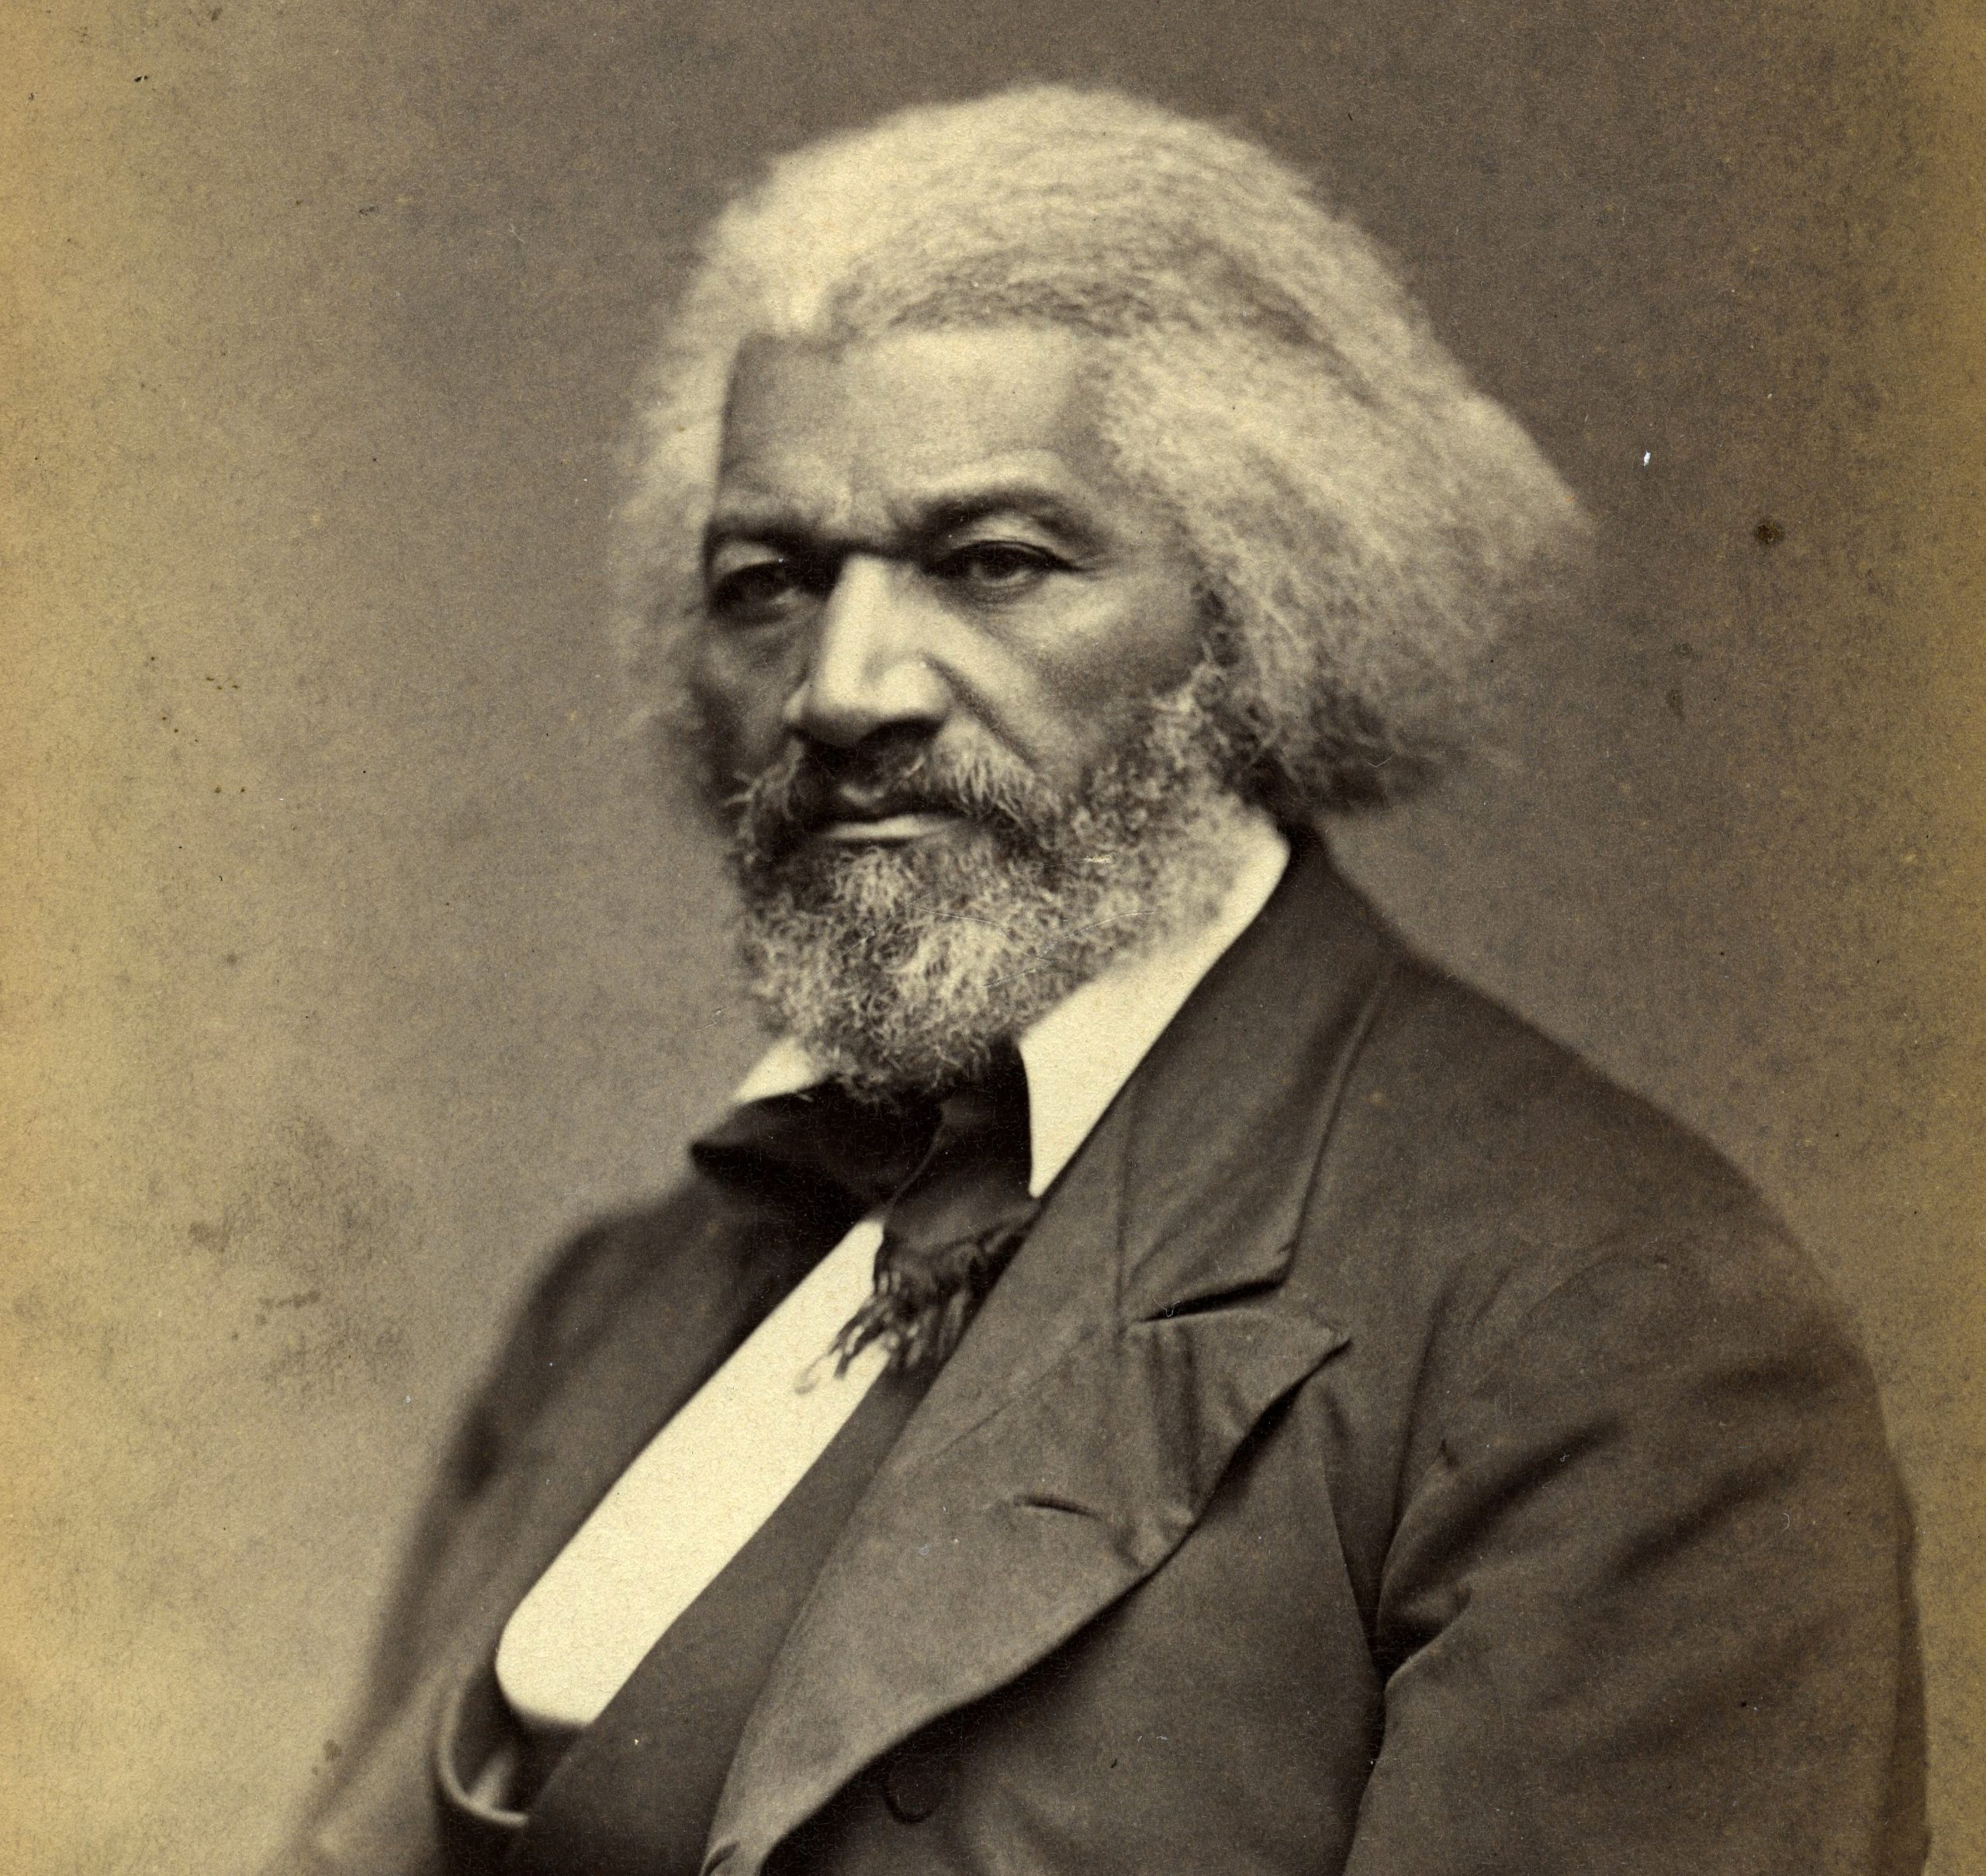 Frederick Douglass on the book that changed his life